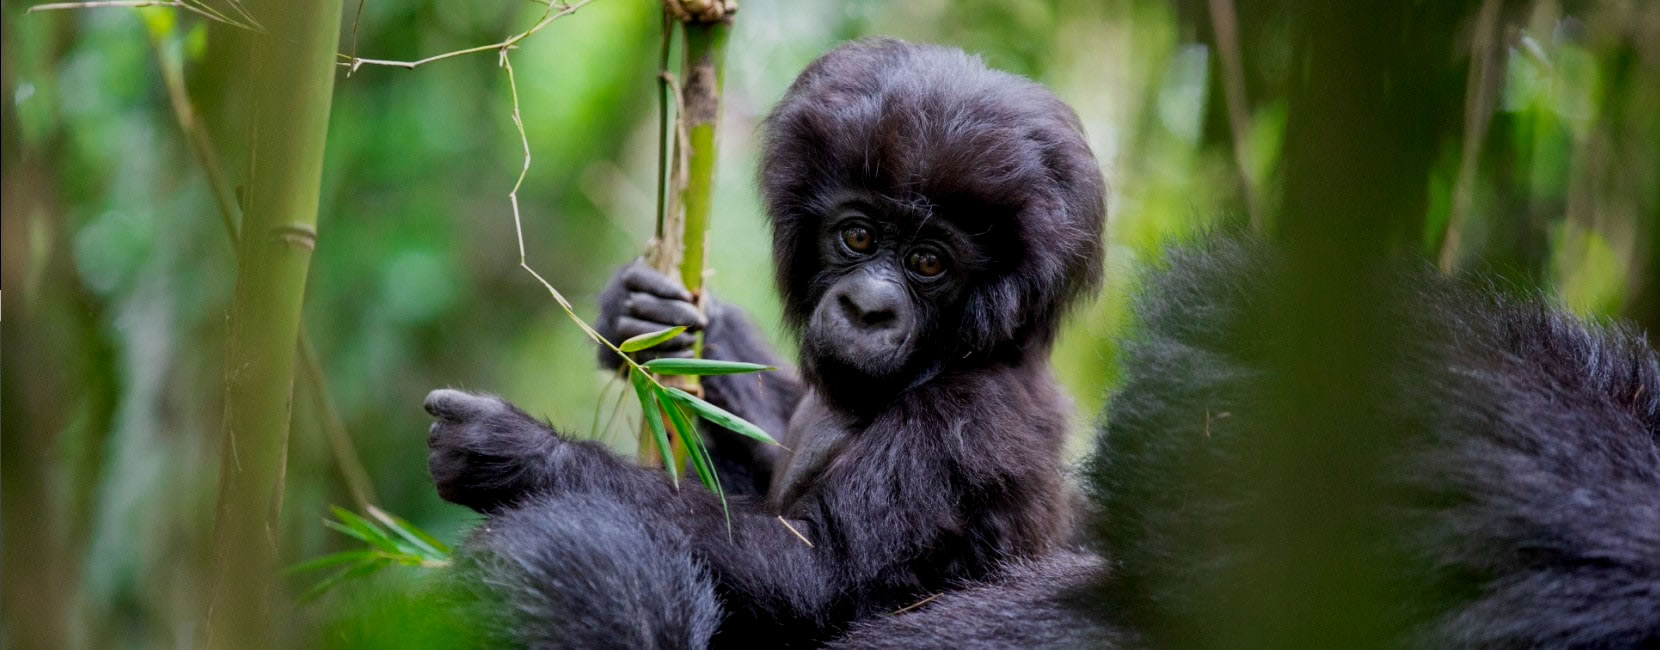 Gorilla discovery is a safari tour and travel company based in Uganda, fully licensed to conduct safaris within Uganda and Rwanda. We offer several tours and safaris in Uganda including Gorilla Tours, wildlife adventures, mountaineering trips